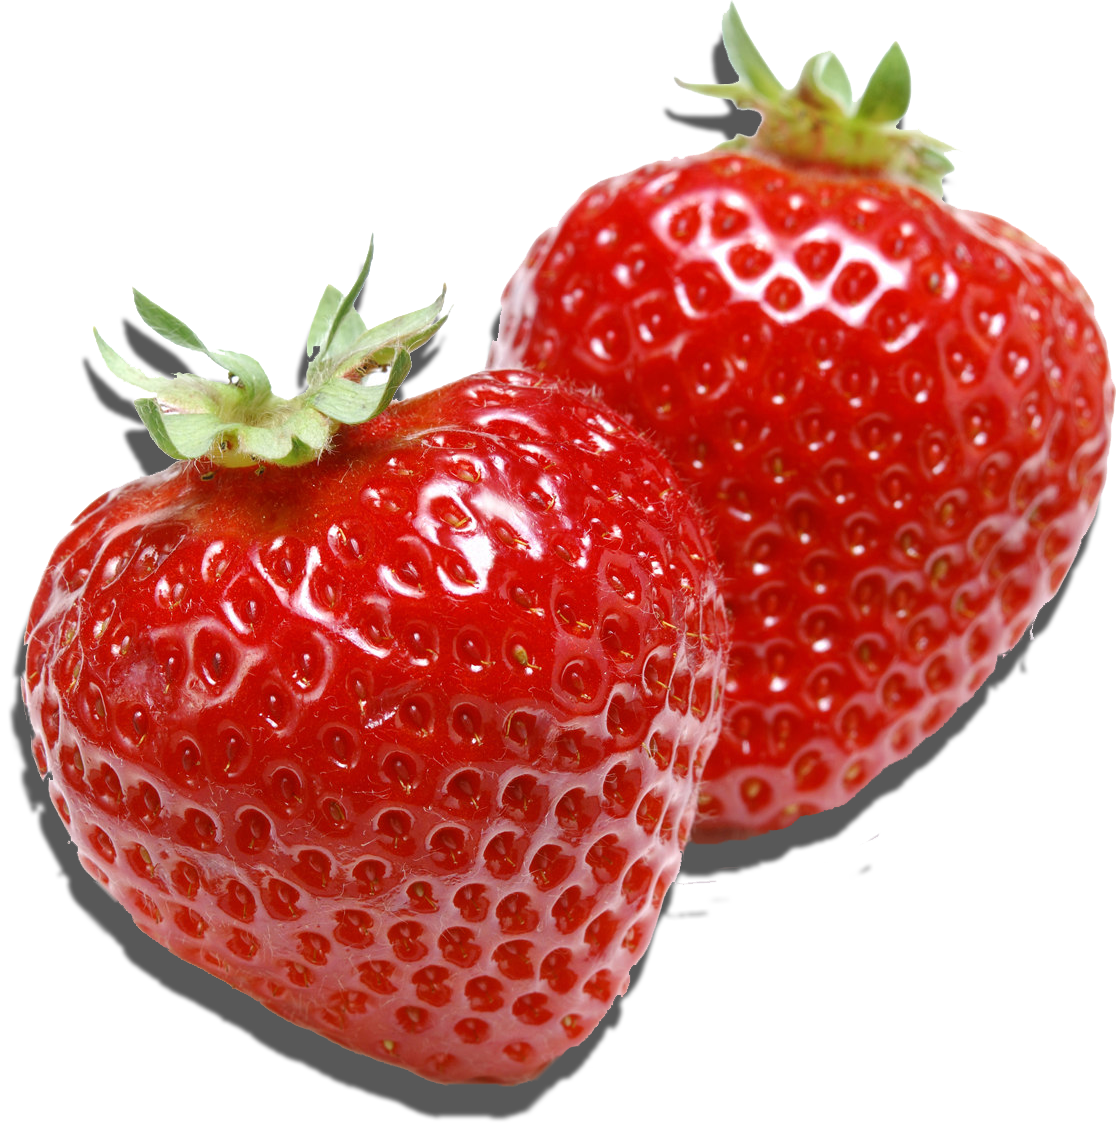 Strawberry Juice Png image #22924